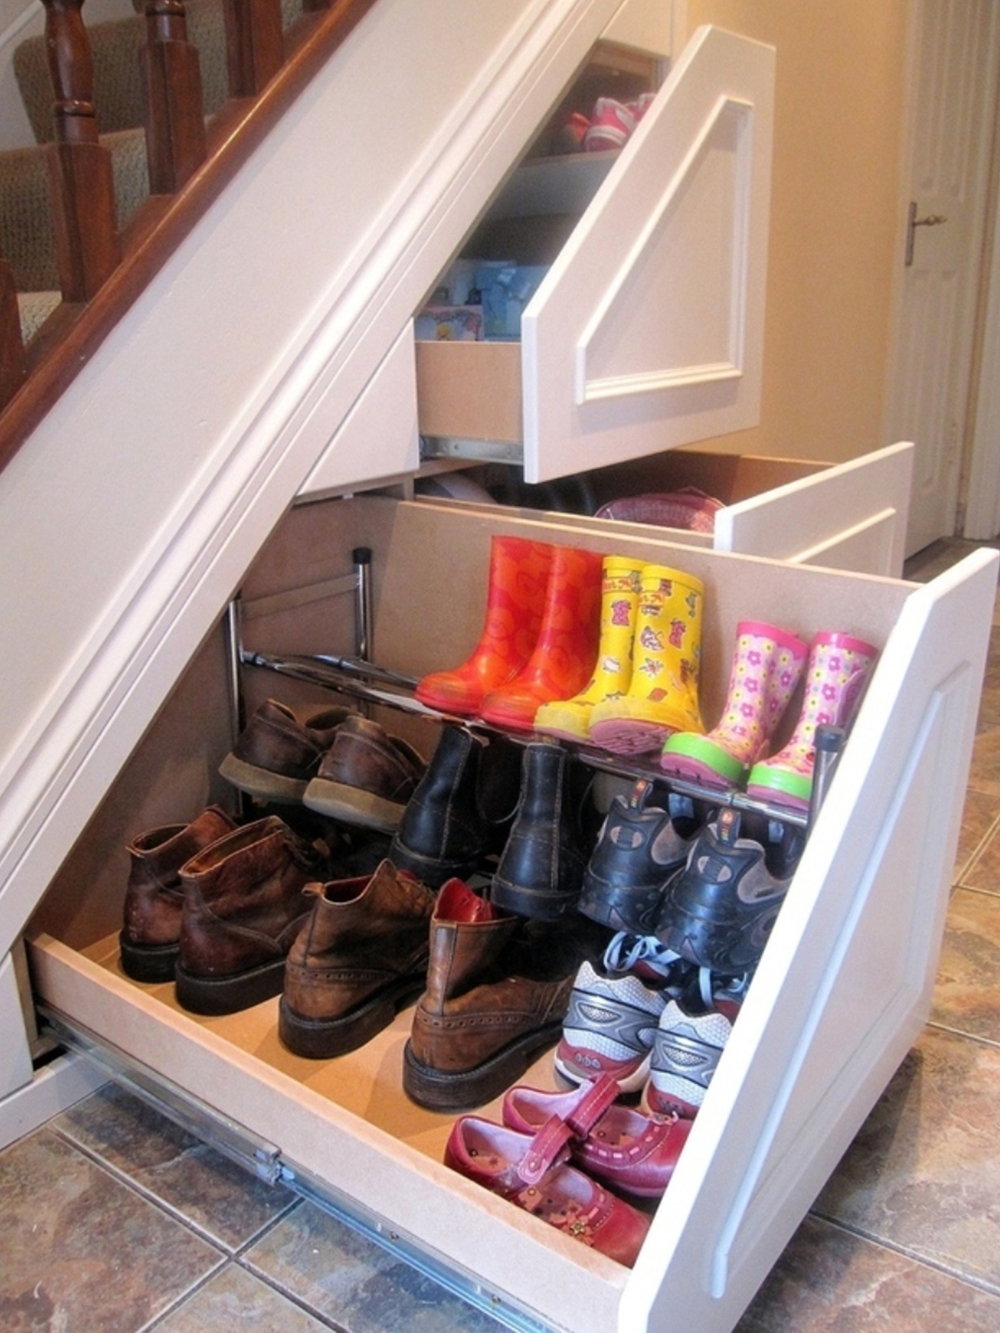 StoreSmith Over-the-Door Shoe Rack Shoes strewn all across the house? StoreSmith is here to help with this handy over-the-door rack that holds up to 30 pairs. Mount it over the door or on a wall. It works on most doors in the house and requires no tools to assemble.